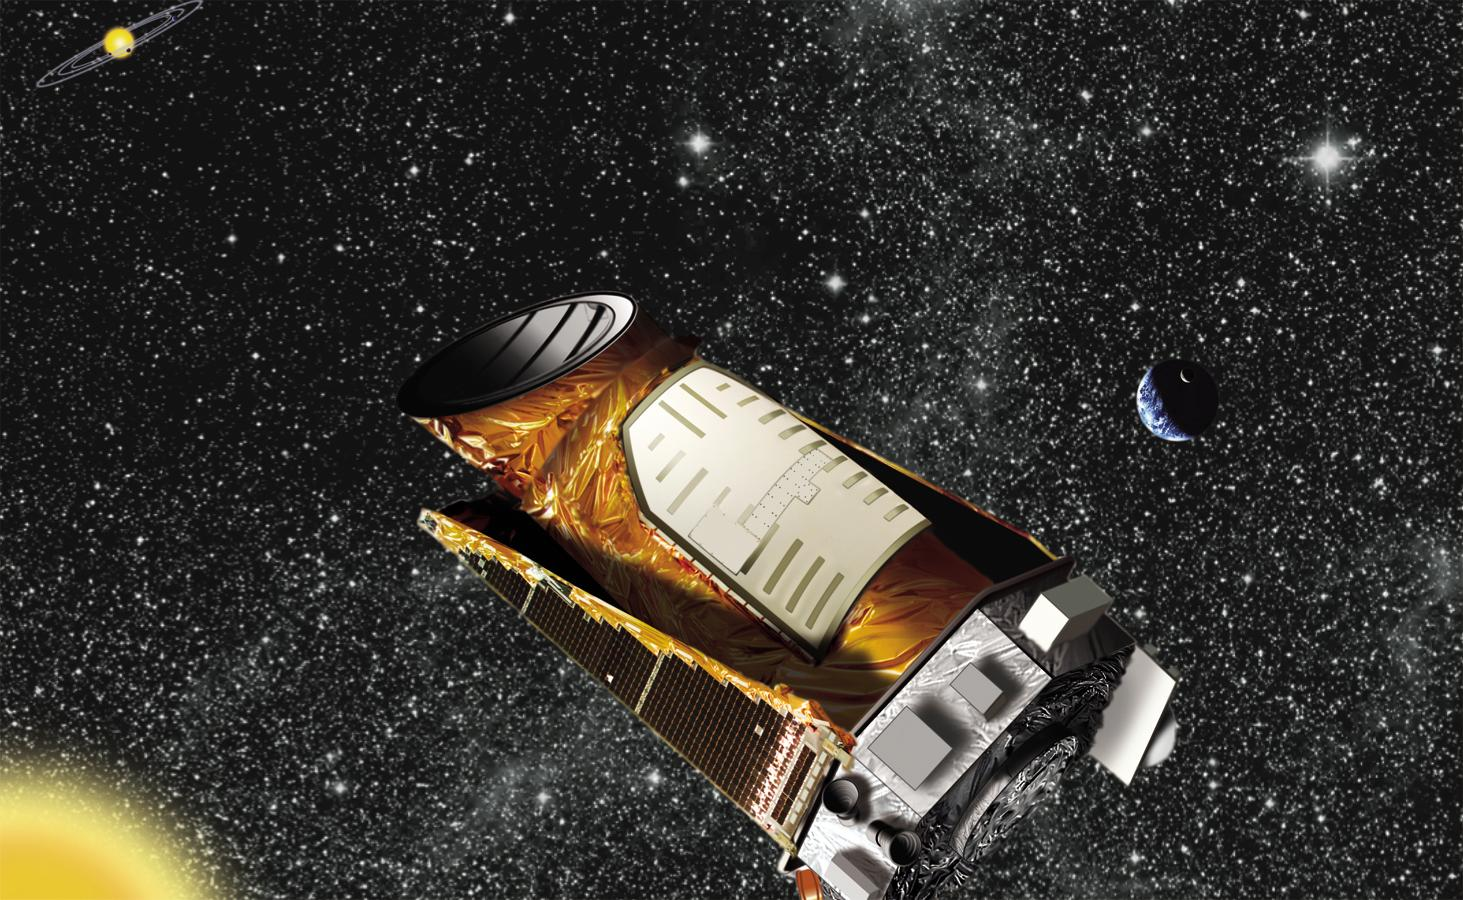 Kepler spacecraft